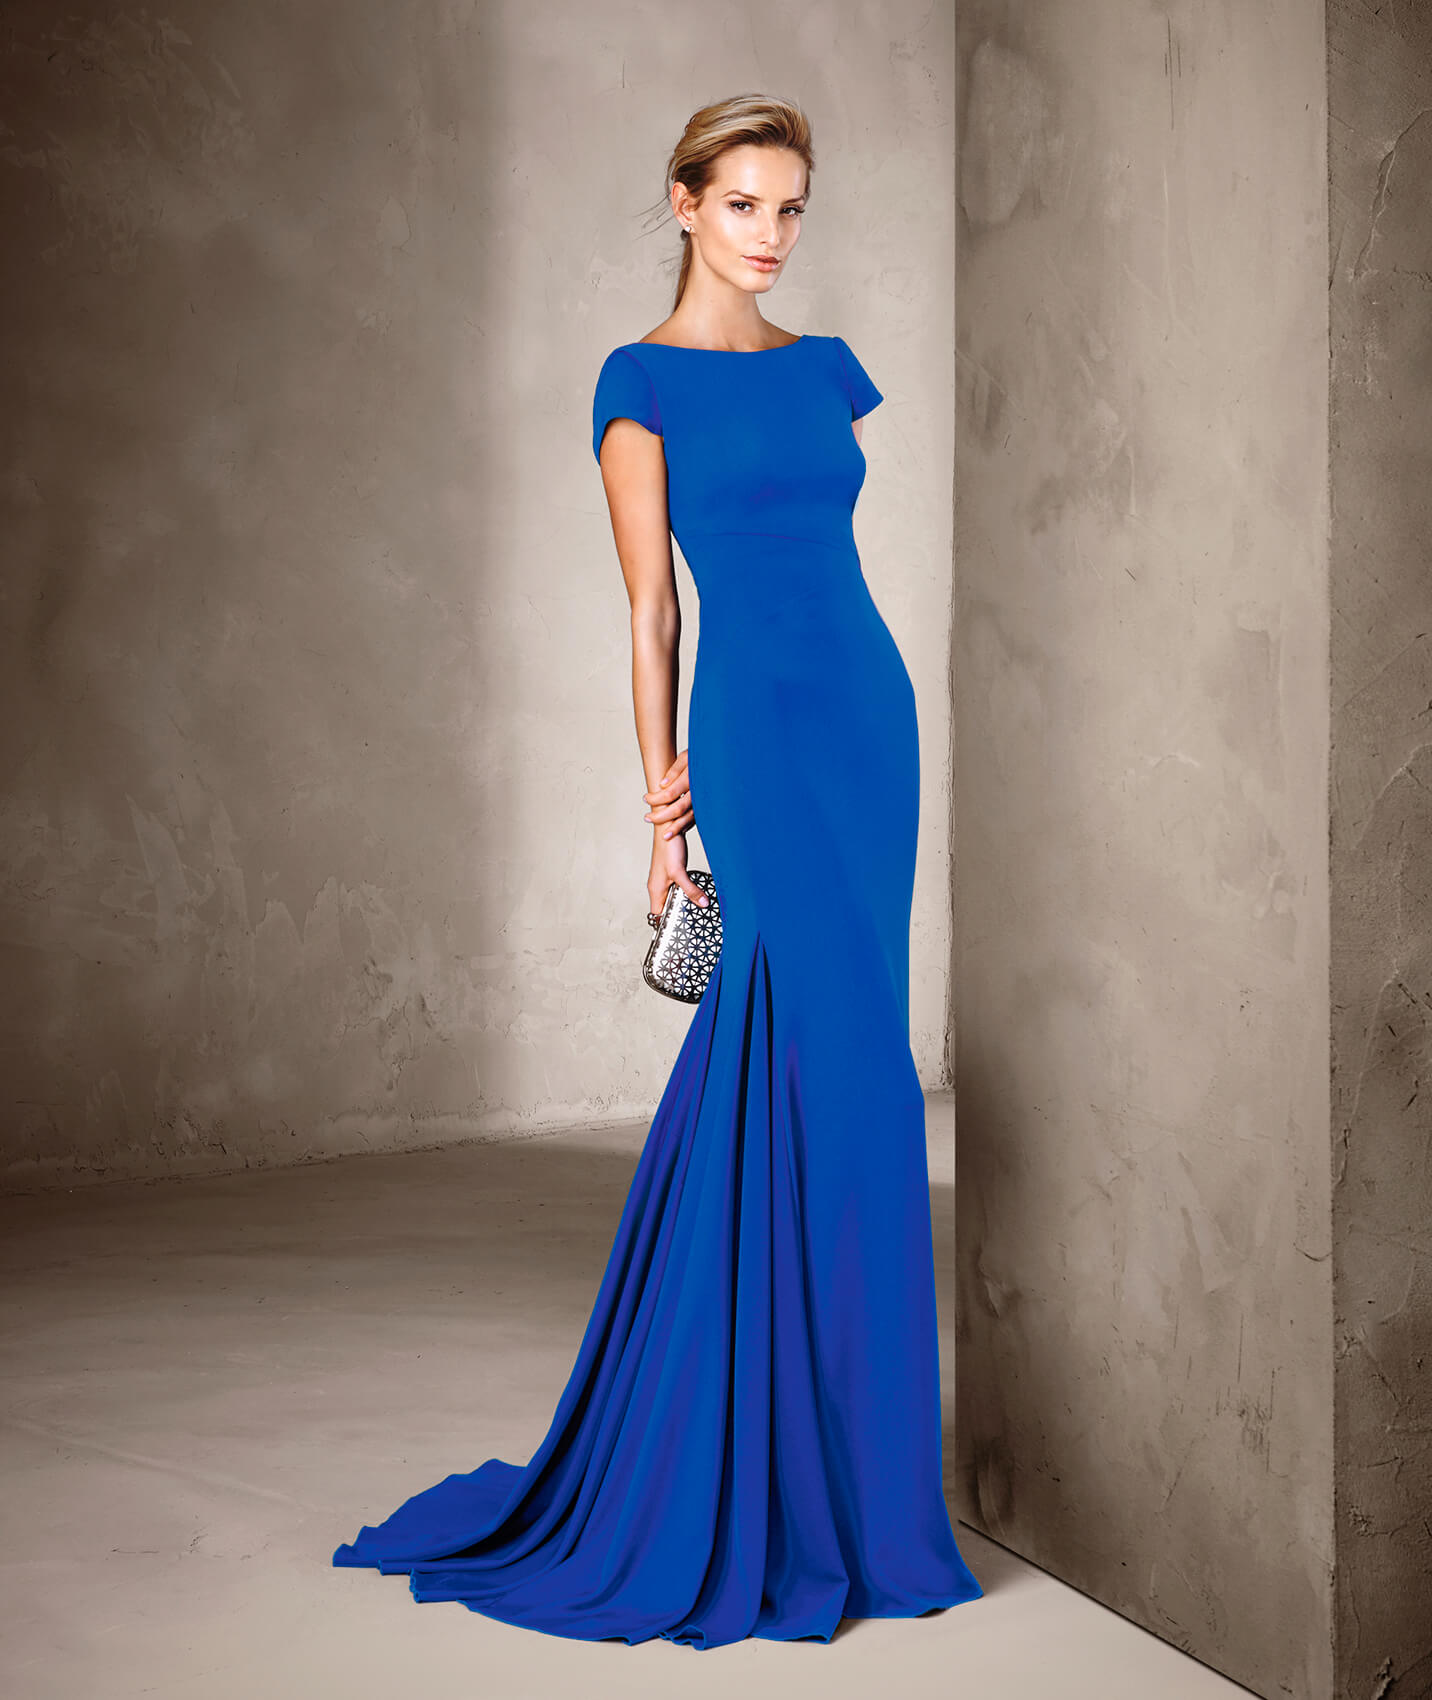 5cd3c10db96 Pronovias Cocktail Cirit outfit in Blue - £350